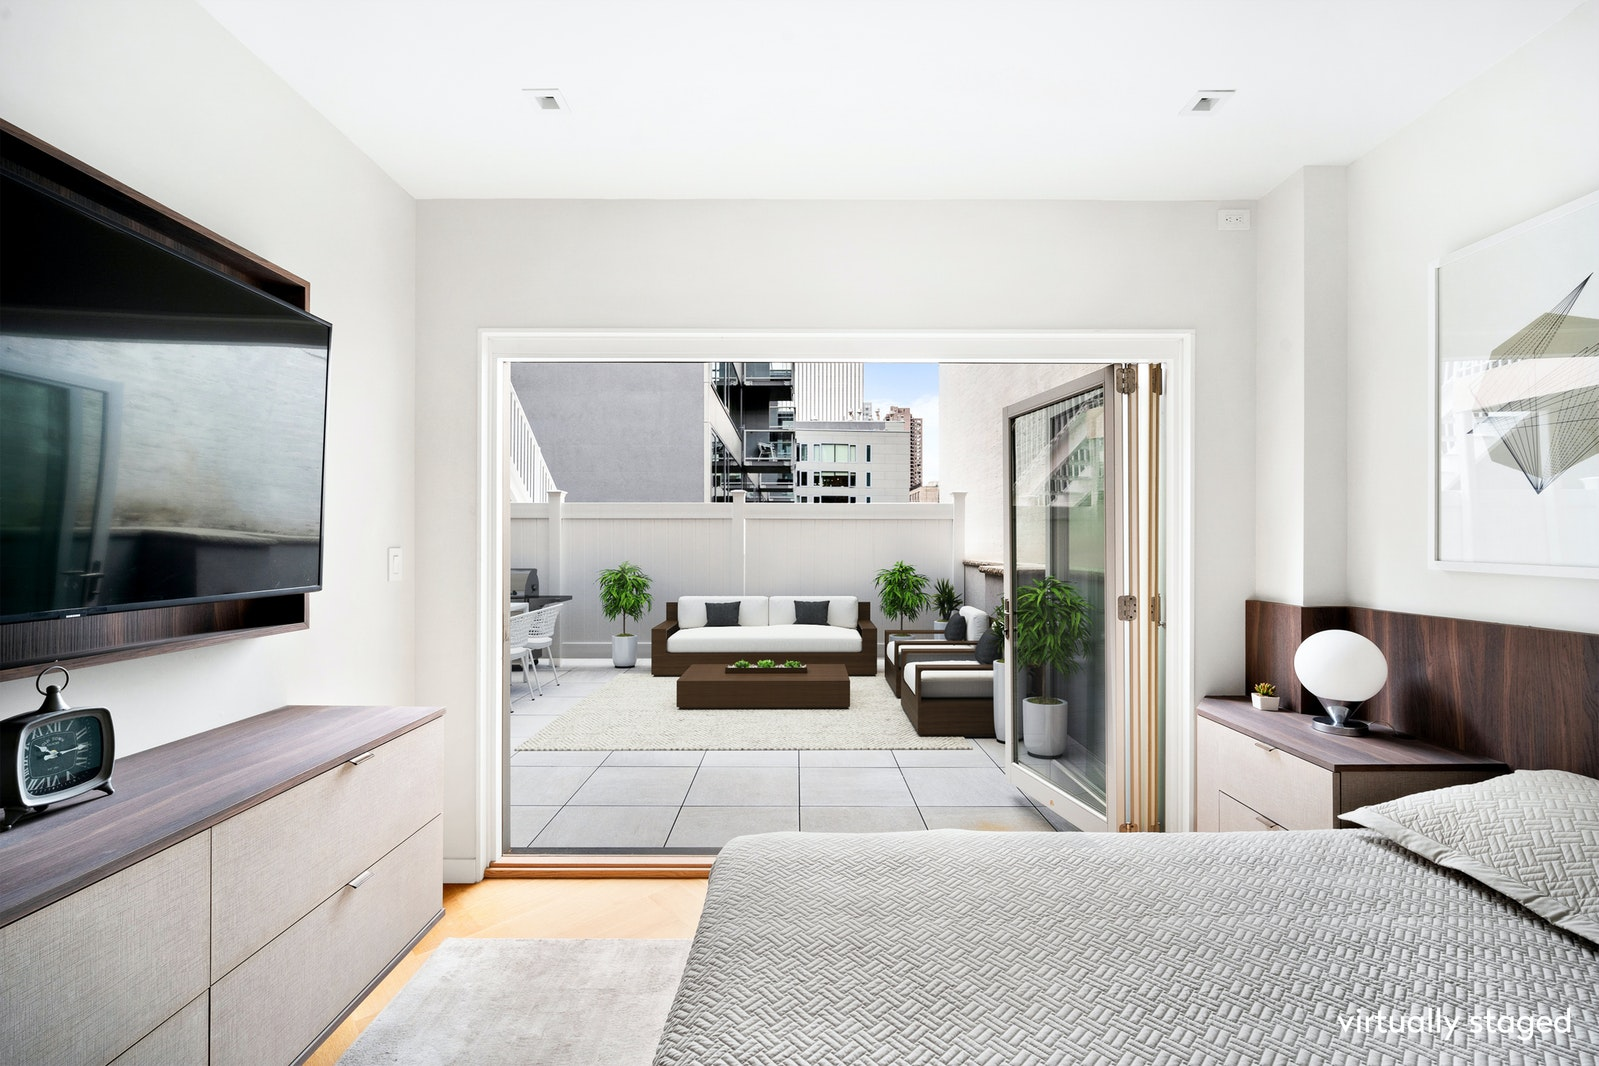 805 Ninth Avenue 2, Midtown West, NYC, $2,325,000, Web #: 19495420